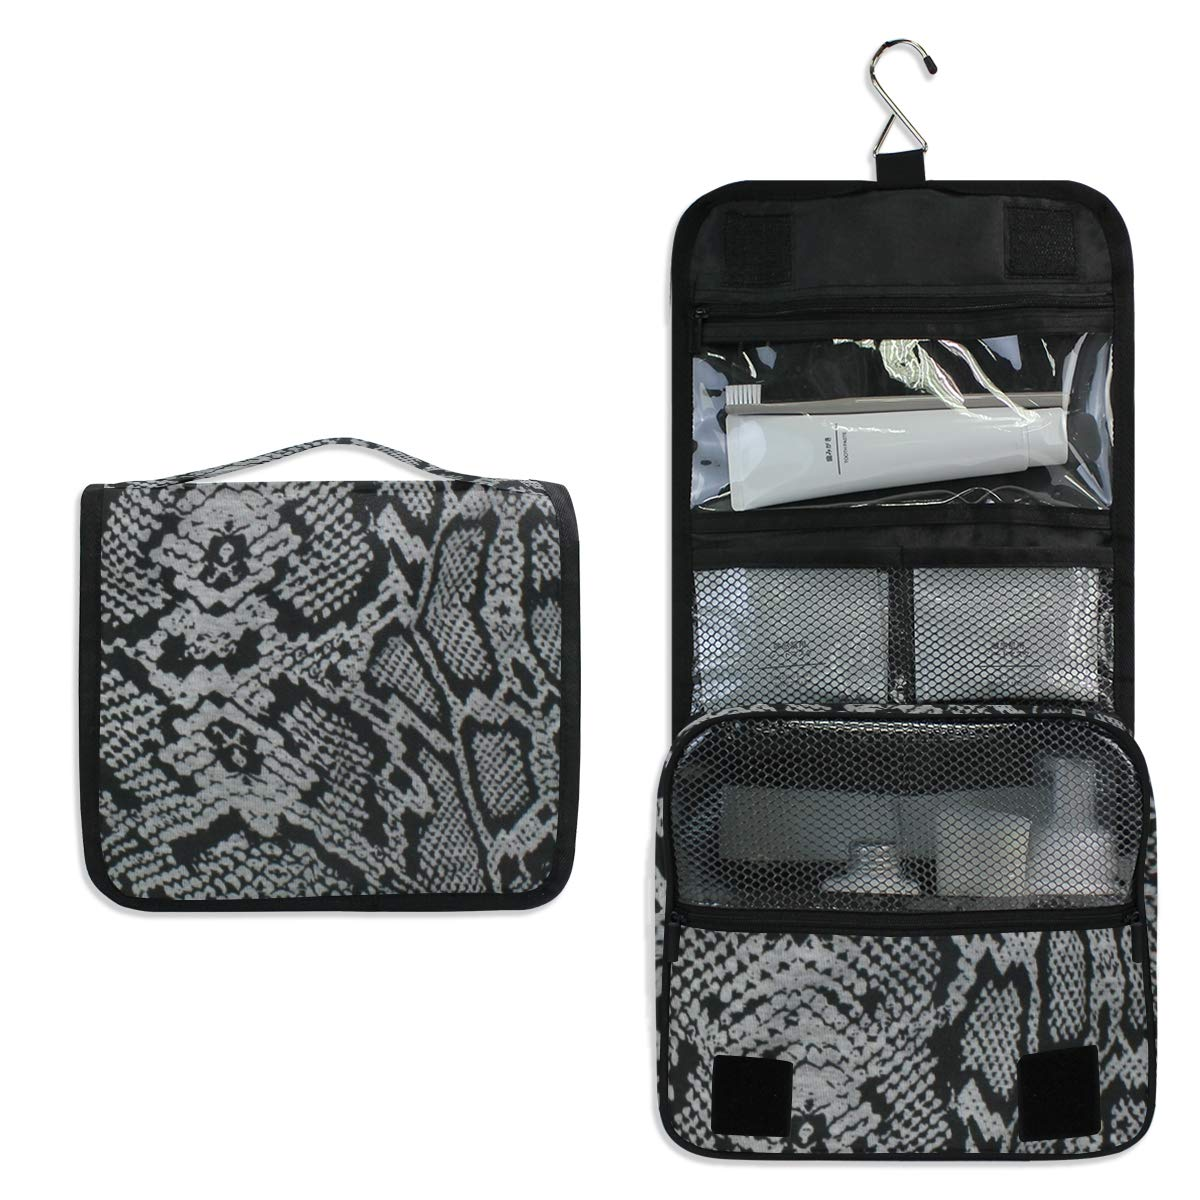 Titlesign Travel Hanging Toiletry Bag Snakeskin Grey Portable Cosmetic Make up Bag case Organizer Wash Gargle Bag Waterproof with Hook for Cosmetics and Toilet Accessories